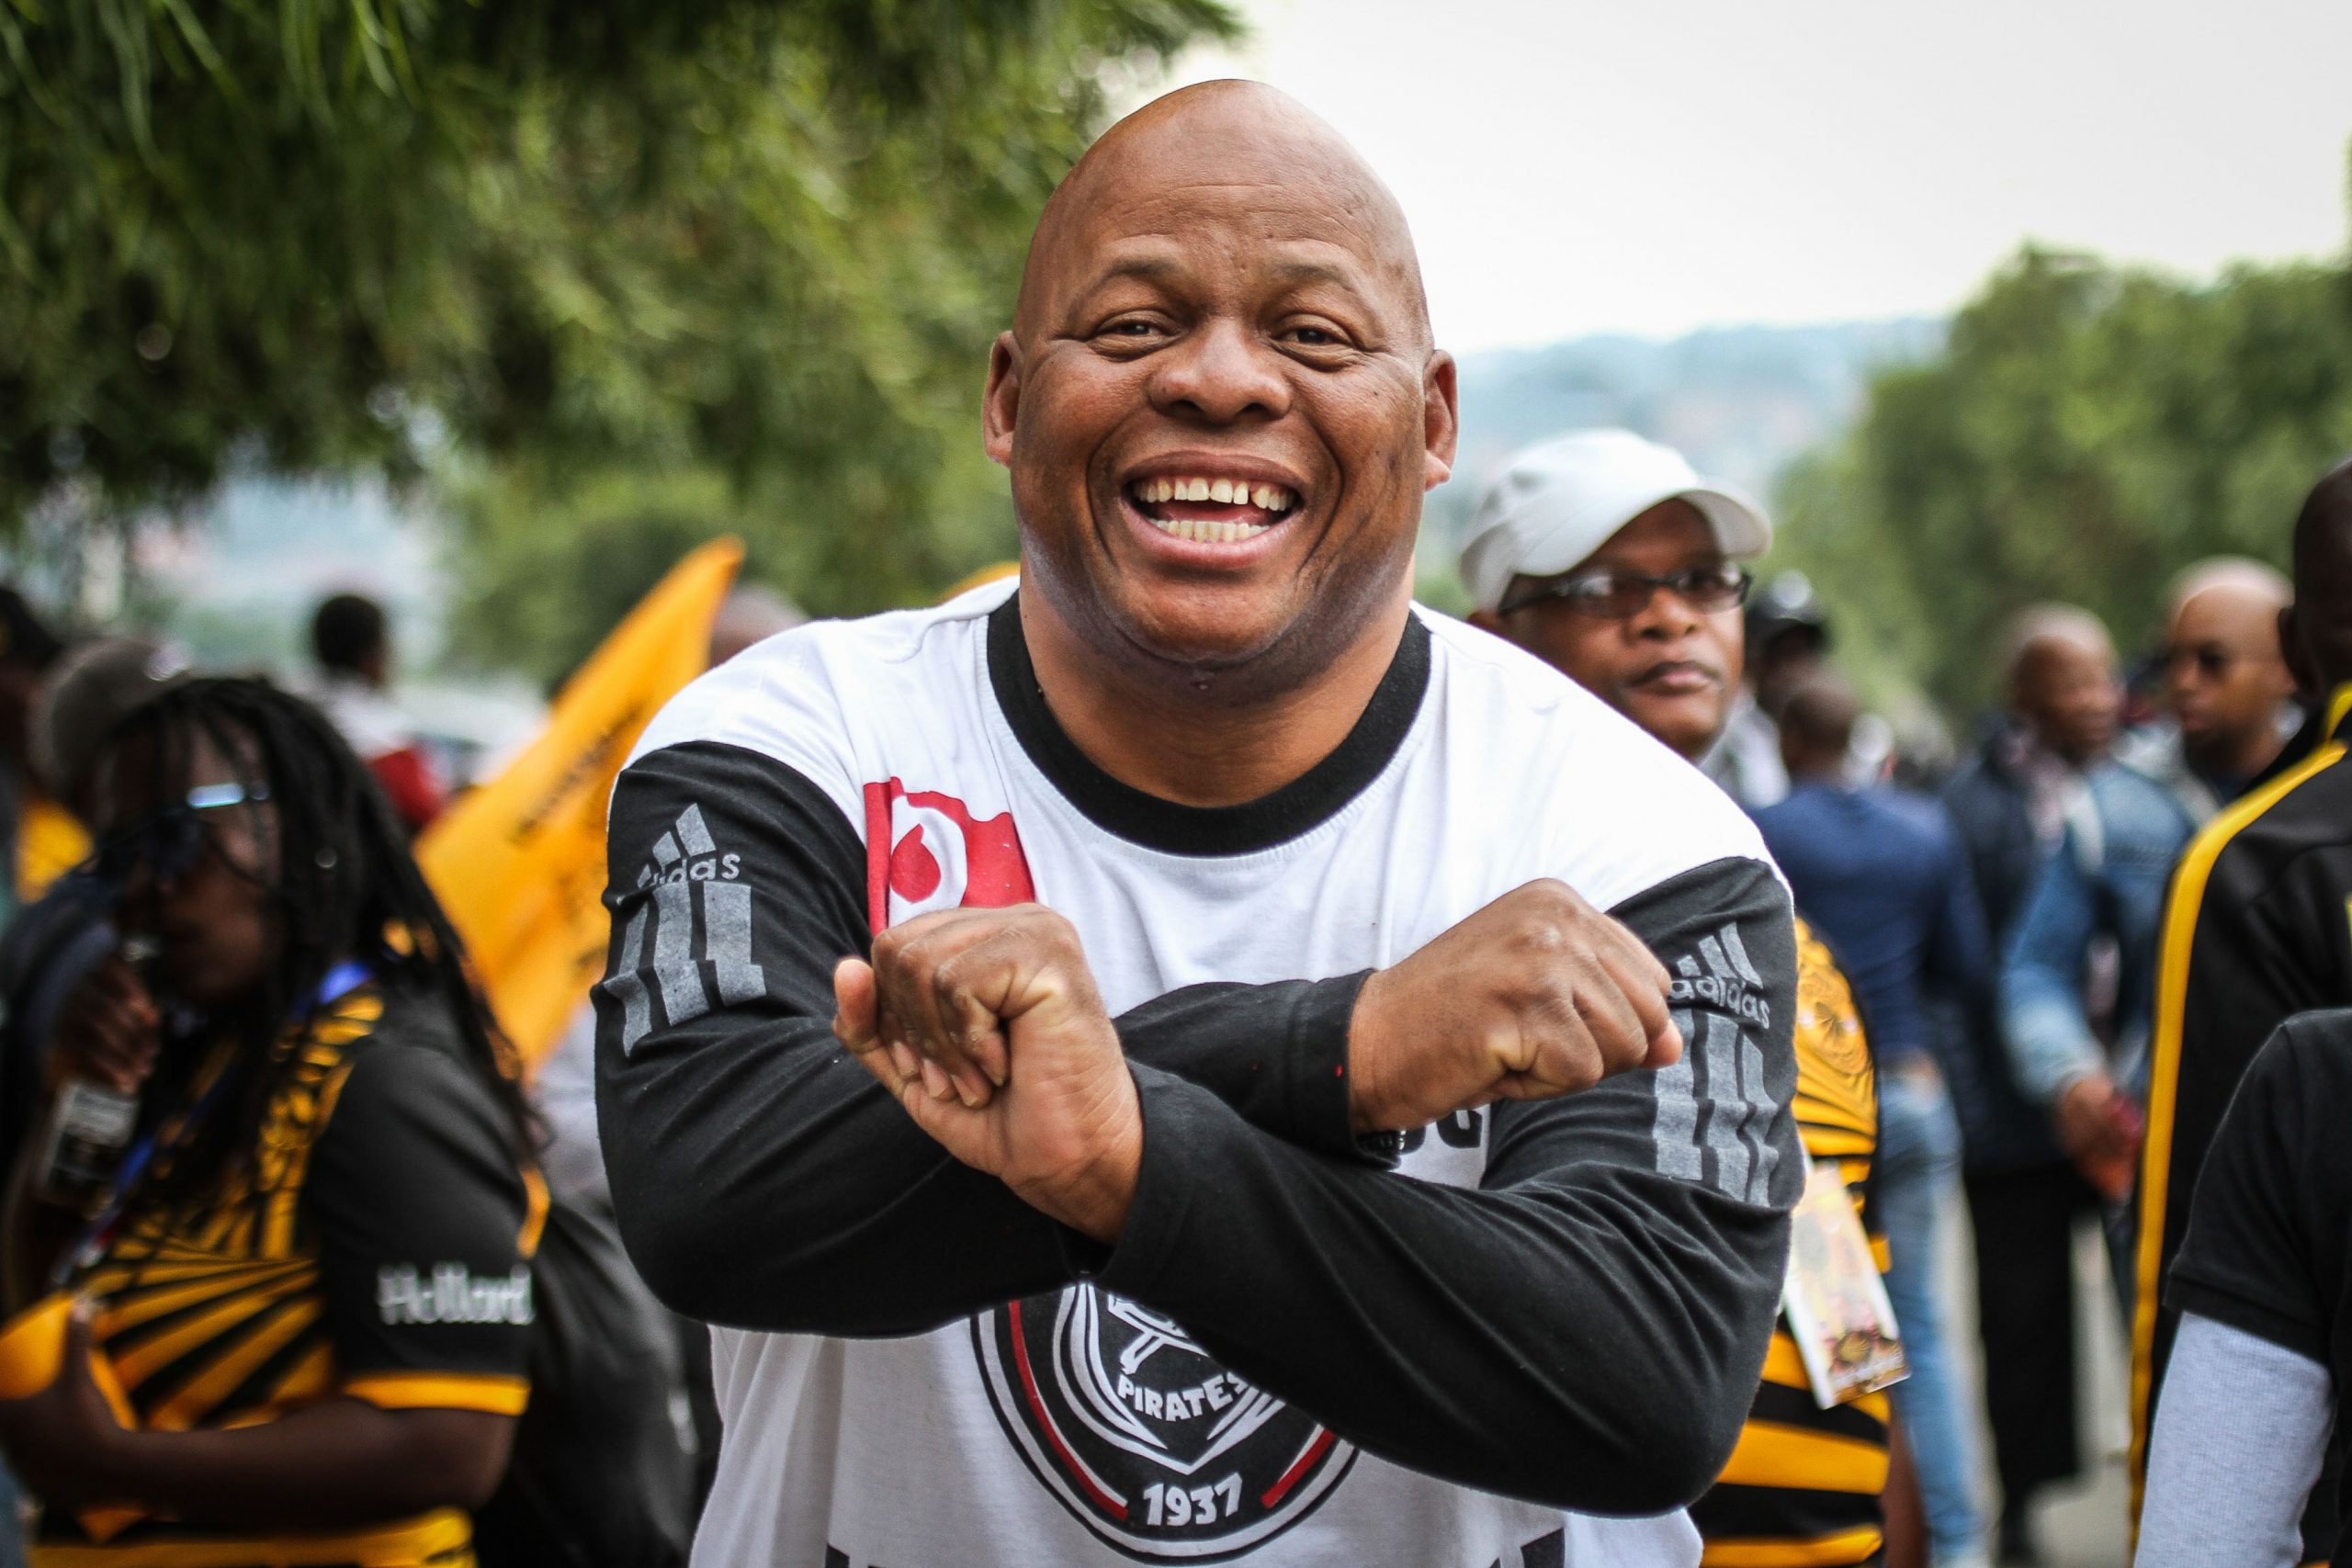 29 February 2020: Orlando Pirates fan Vusi Duba spoke about the Soweto Derby's historical significance. (Photograph by Lebo Edgar)